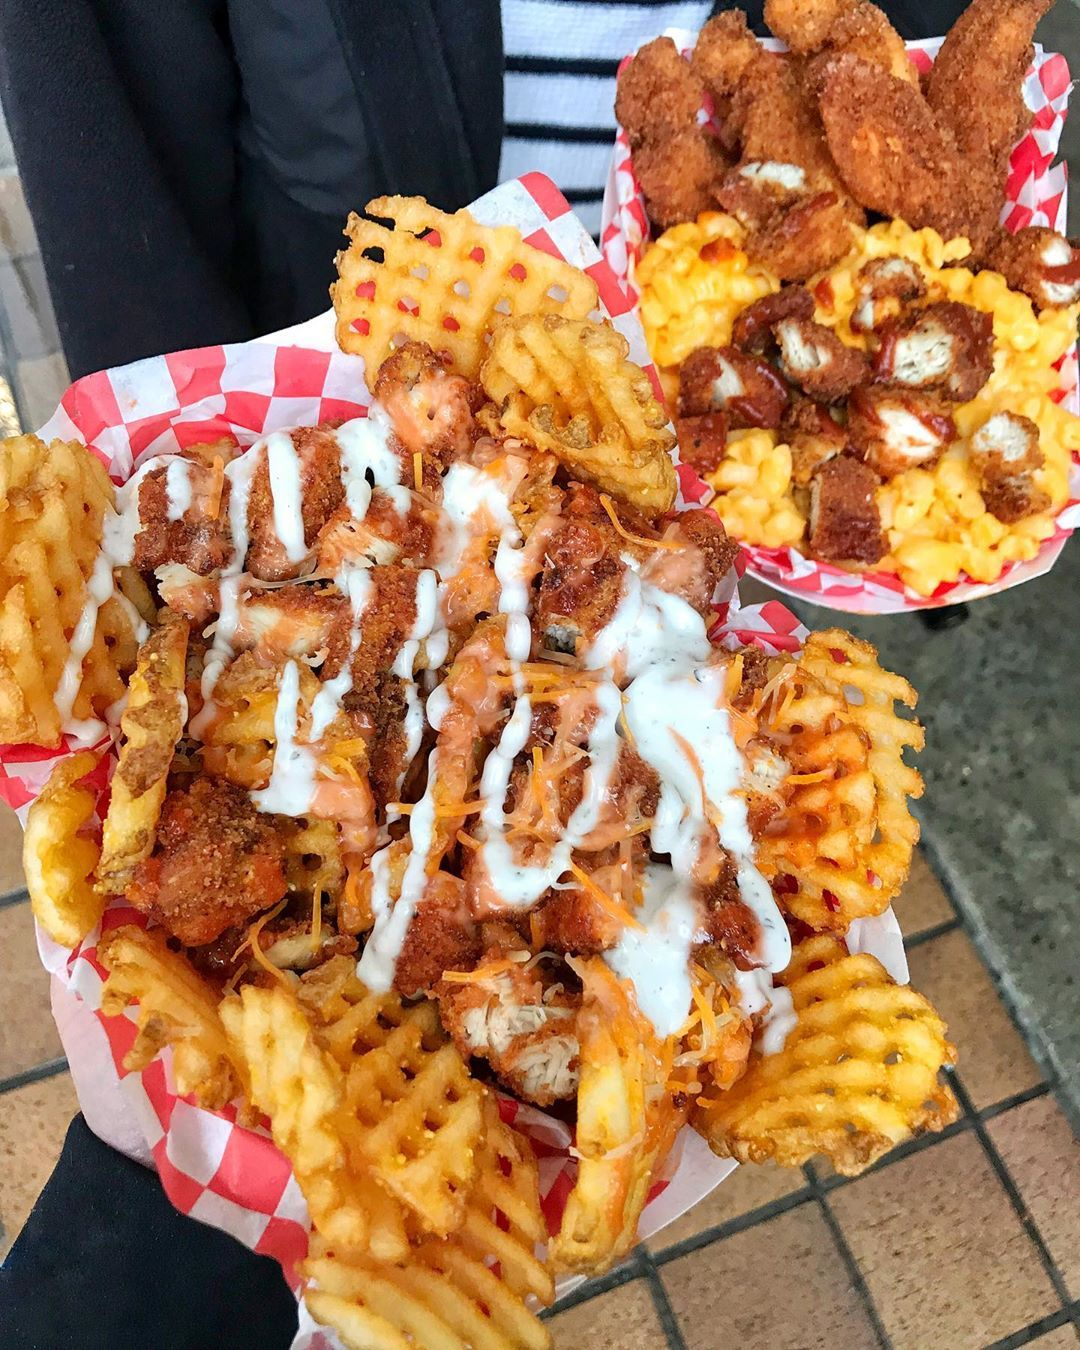 Chicken and fries waffle fries fries waffles